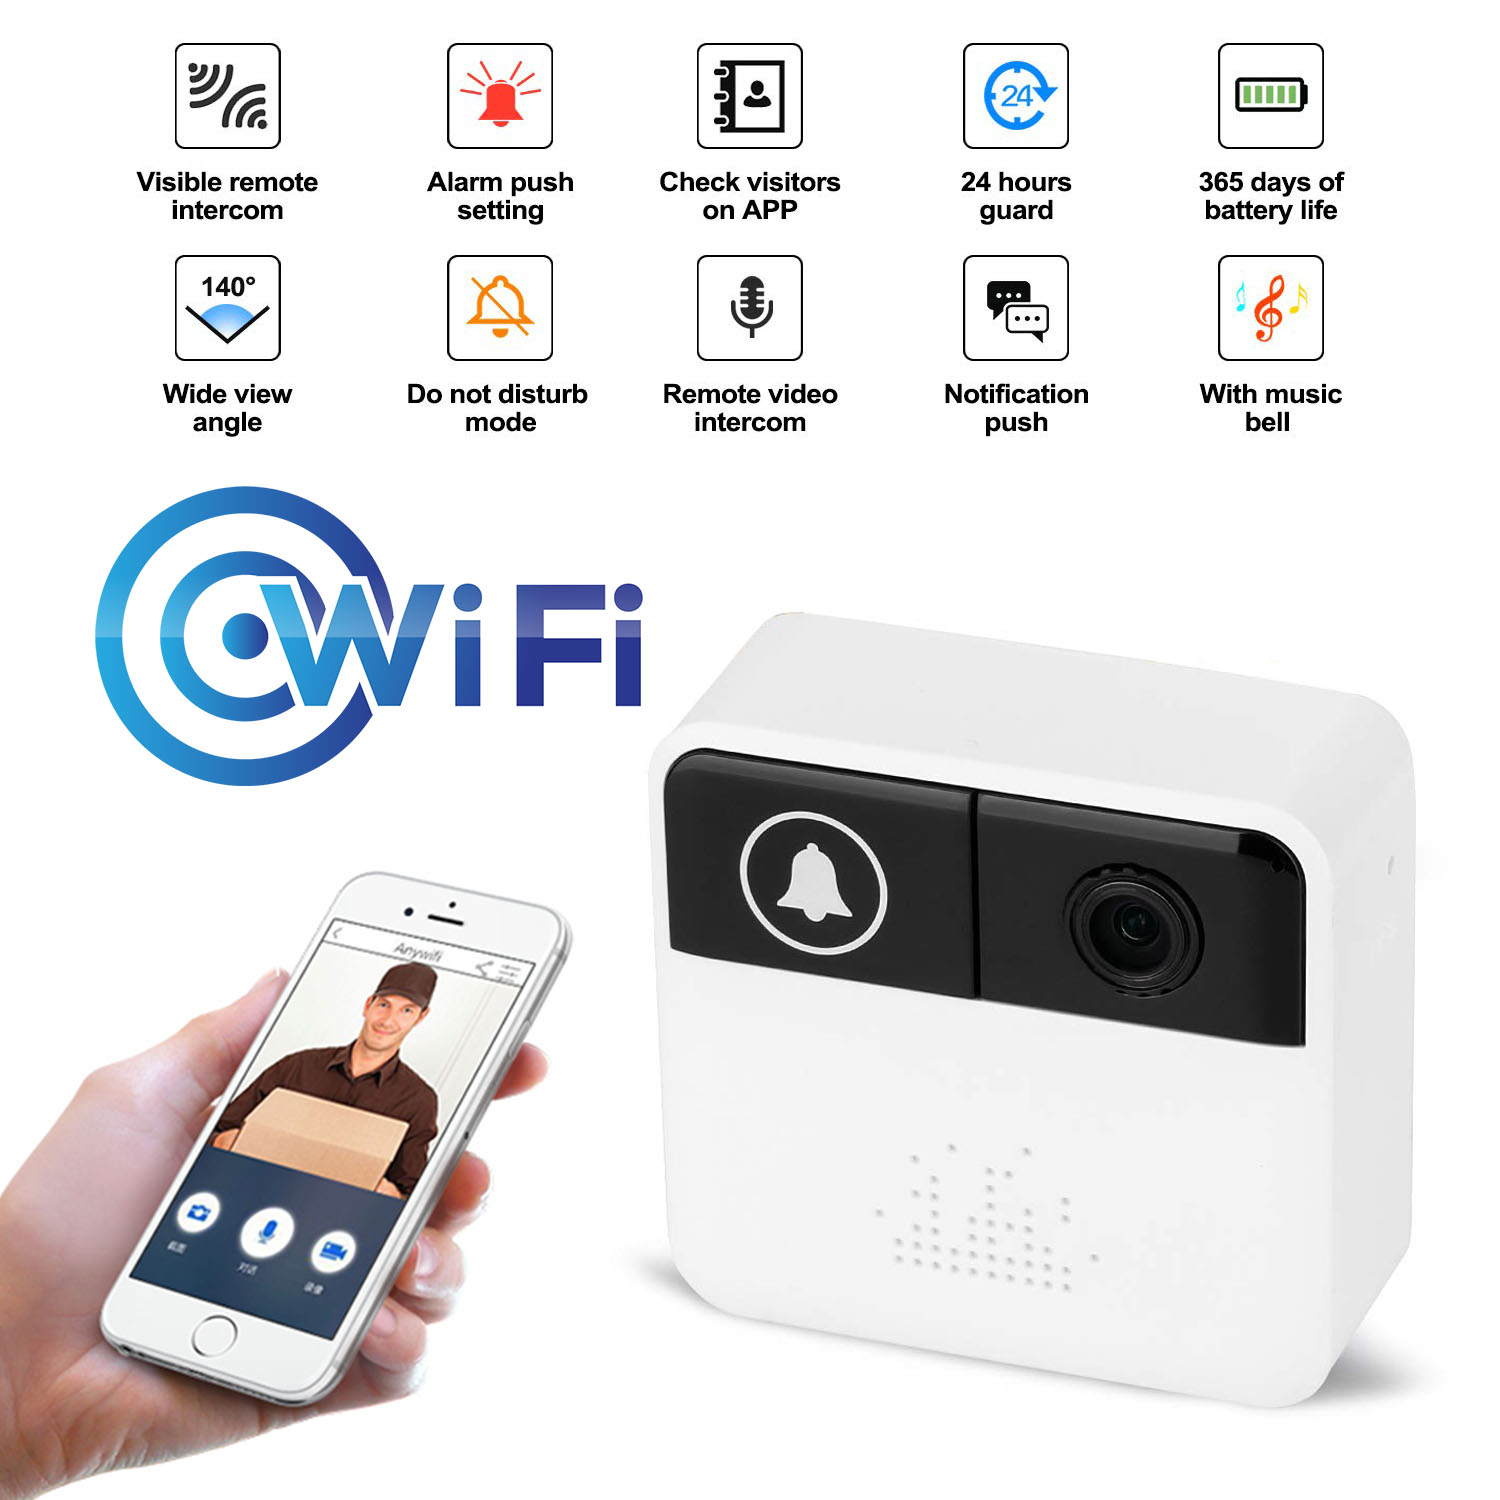 Smart WiFi Video Intercom Doorbell Security Camera 2 Way Audio Door Phone Bell With Ring Bell Intercom SD Card For iOS AndroidSmart WiFi Video Intercom Doorbell Security Camera 2 Way Audio Door Phone Bell With Ring Bell Intercom SD Card For iOS Android